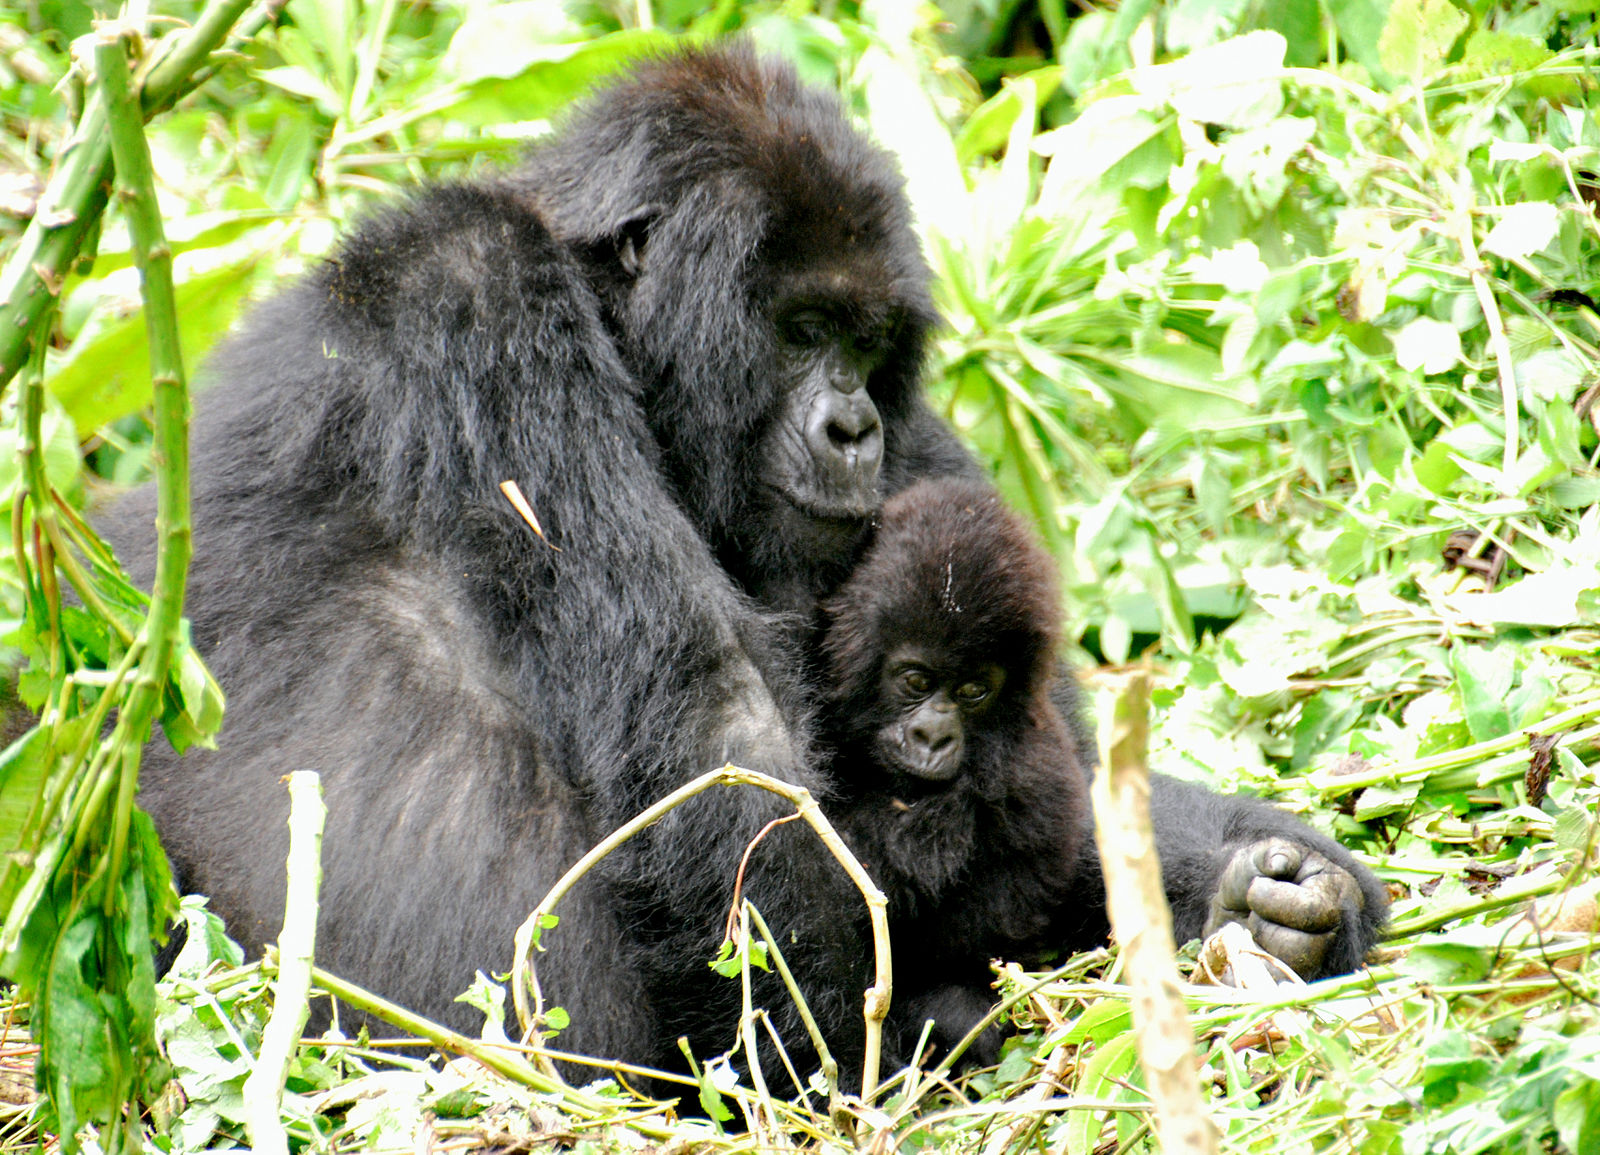 Mother and baby gorillas in Bwindi forest